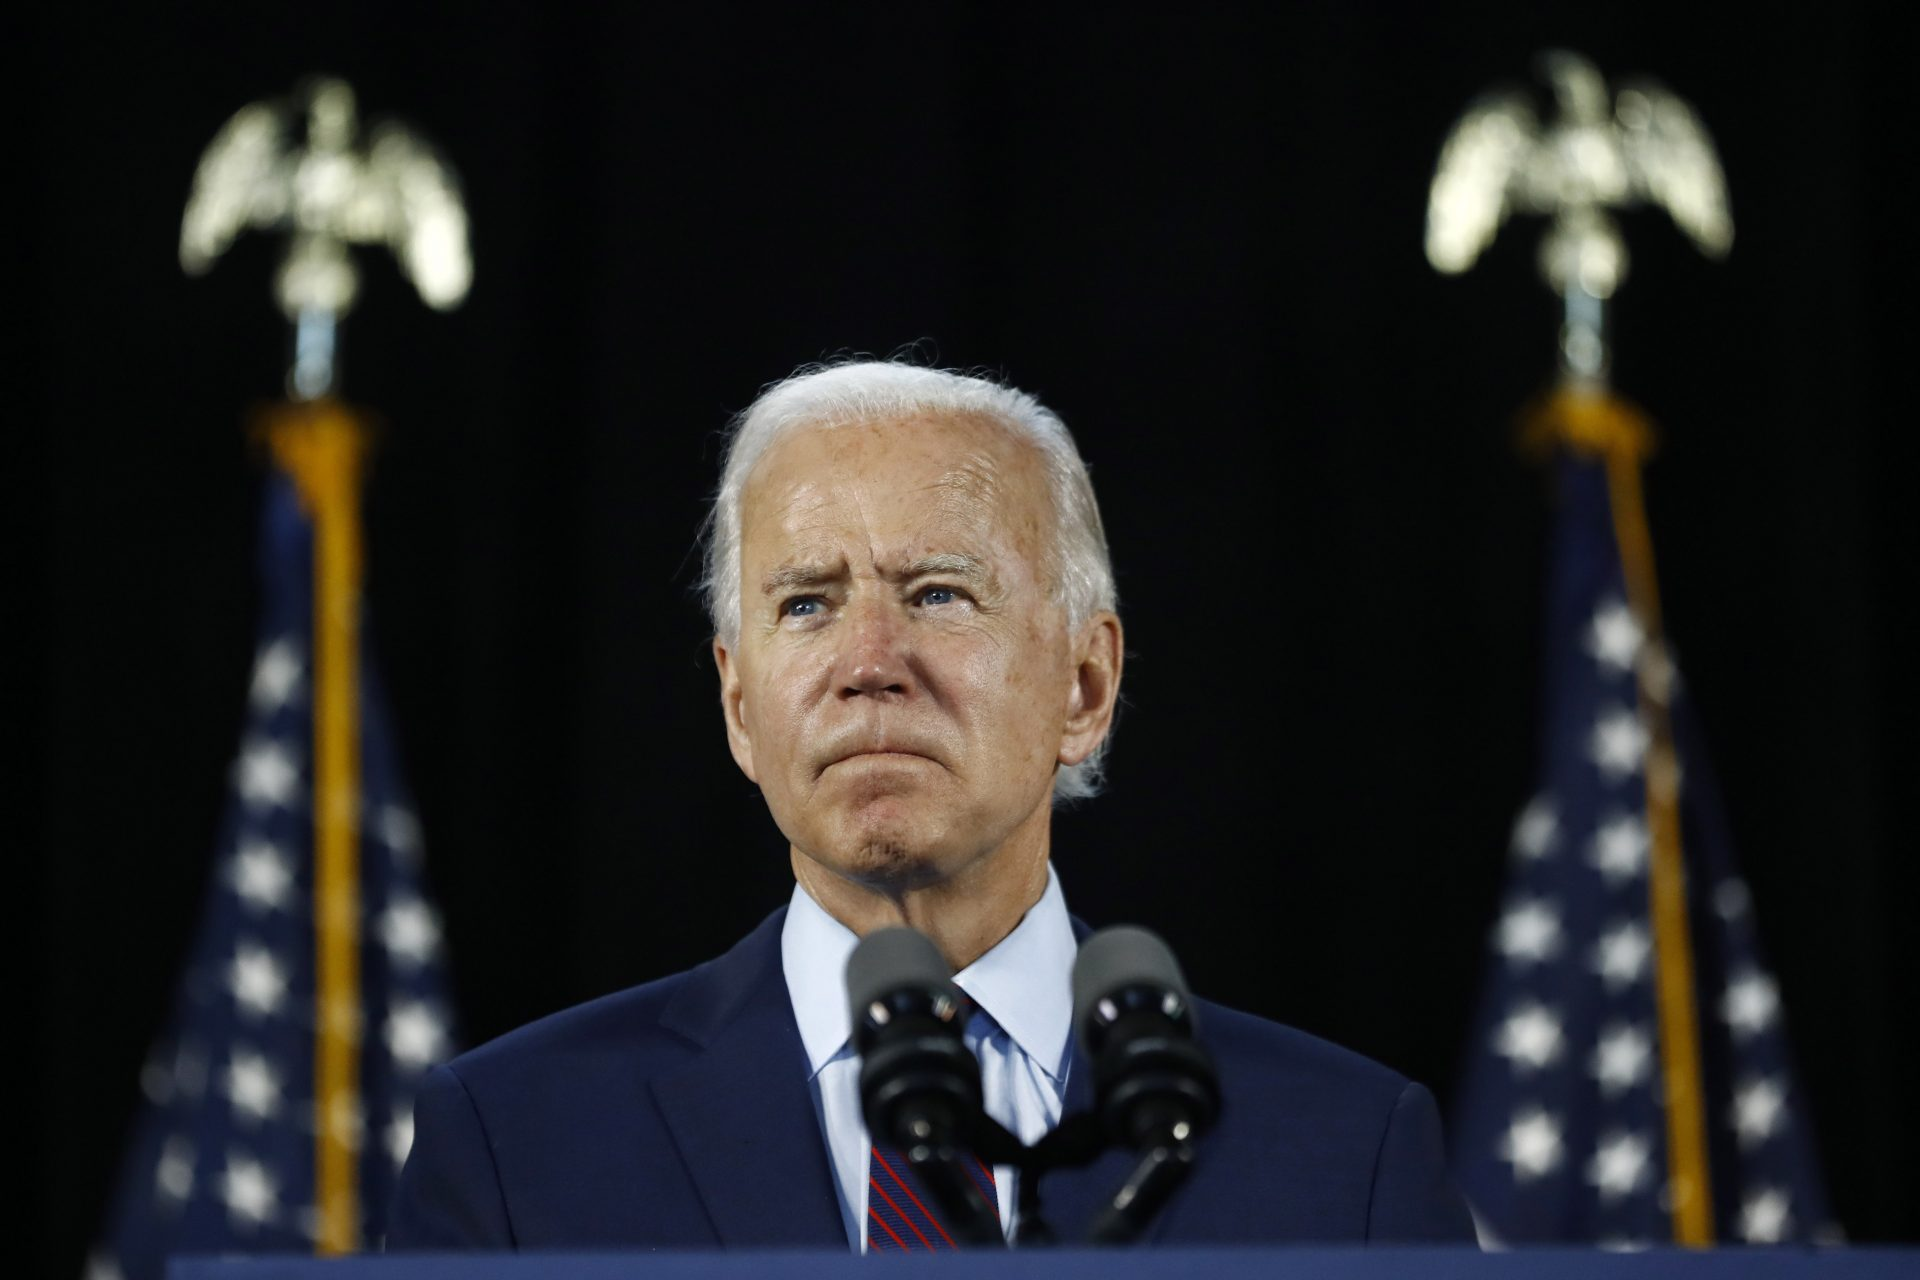 Democratic presidential candidate, former Vice President Joe Biden pauses while speaking during an event Thursday, June 25, 2020, in Lancaster, Pa.